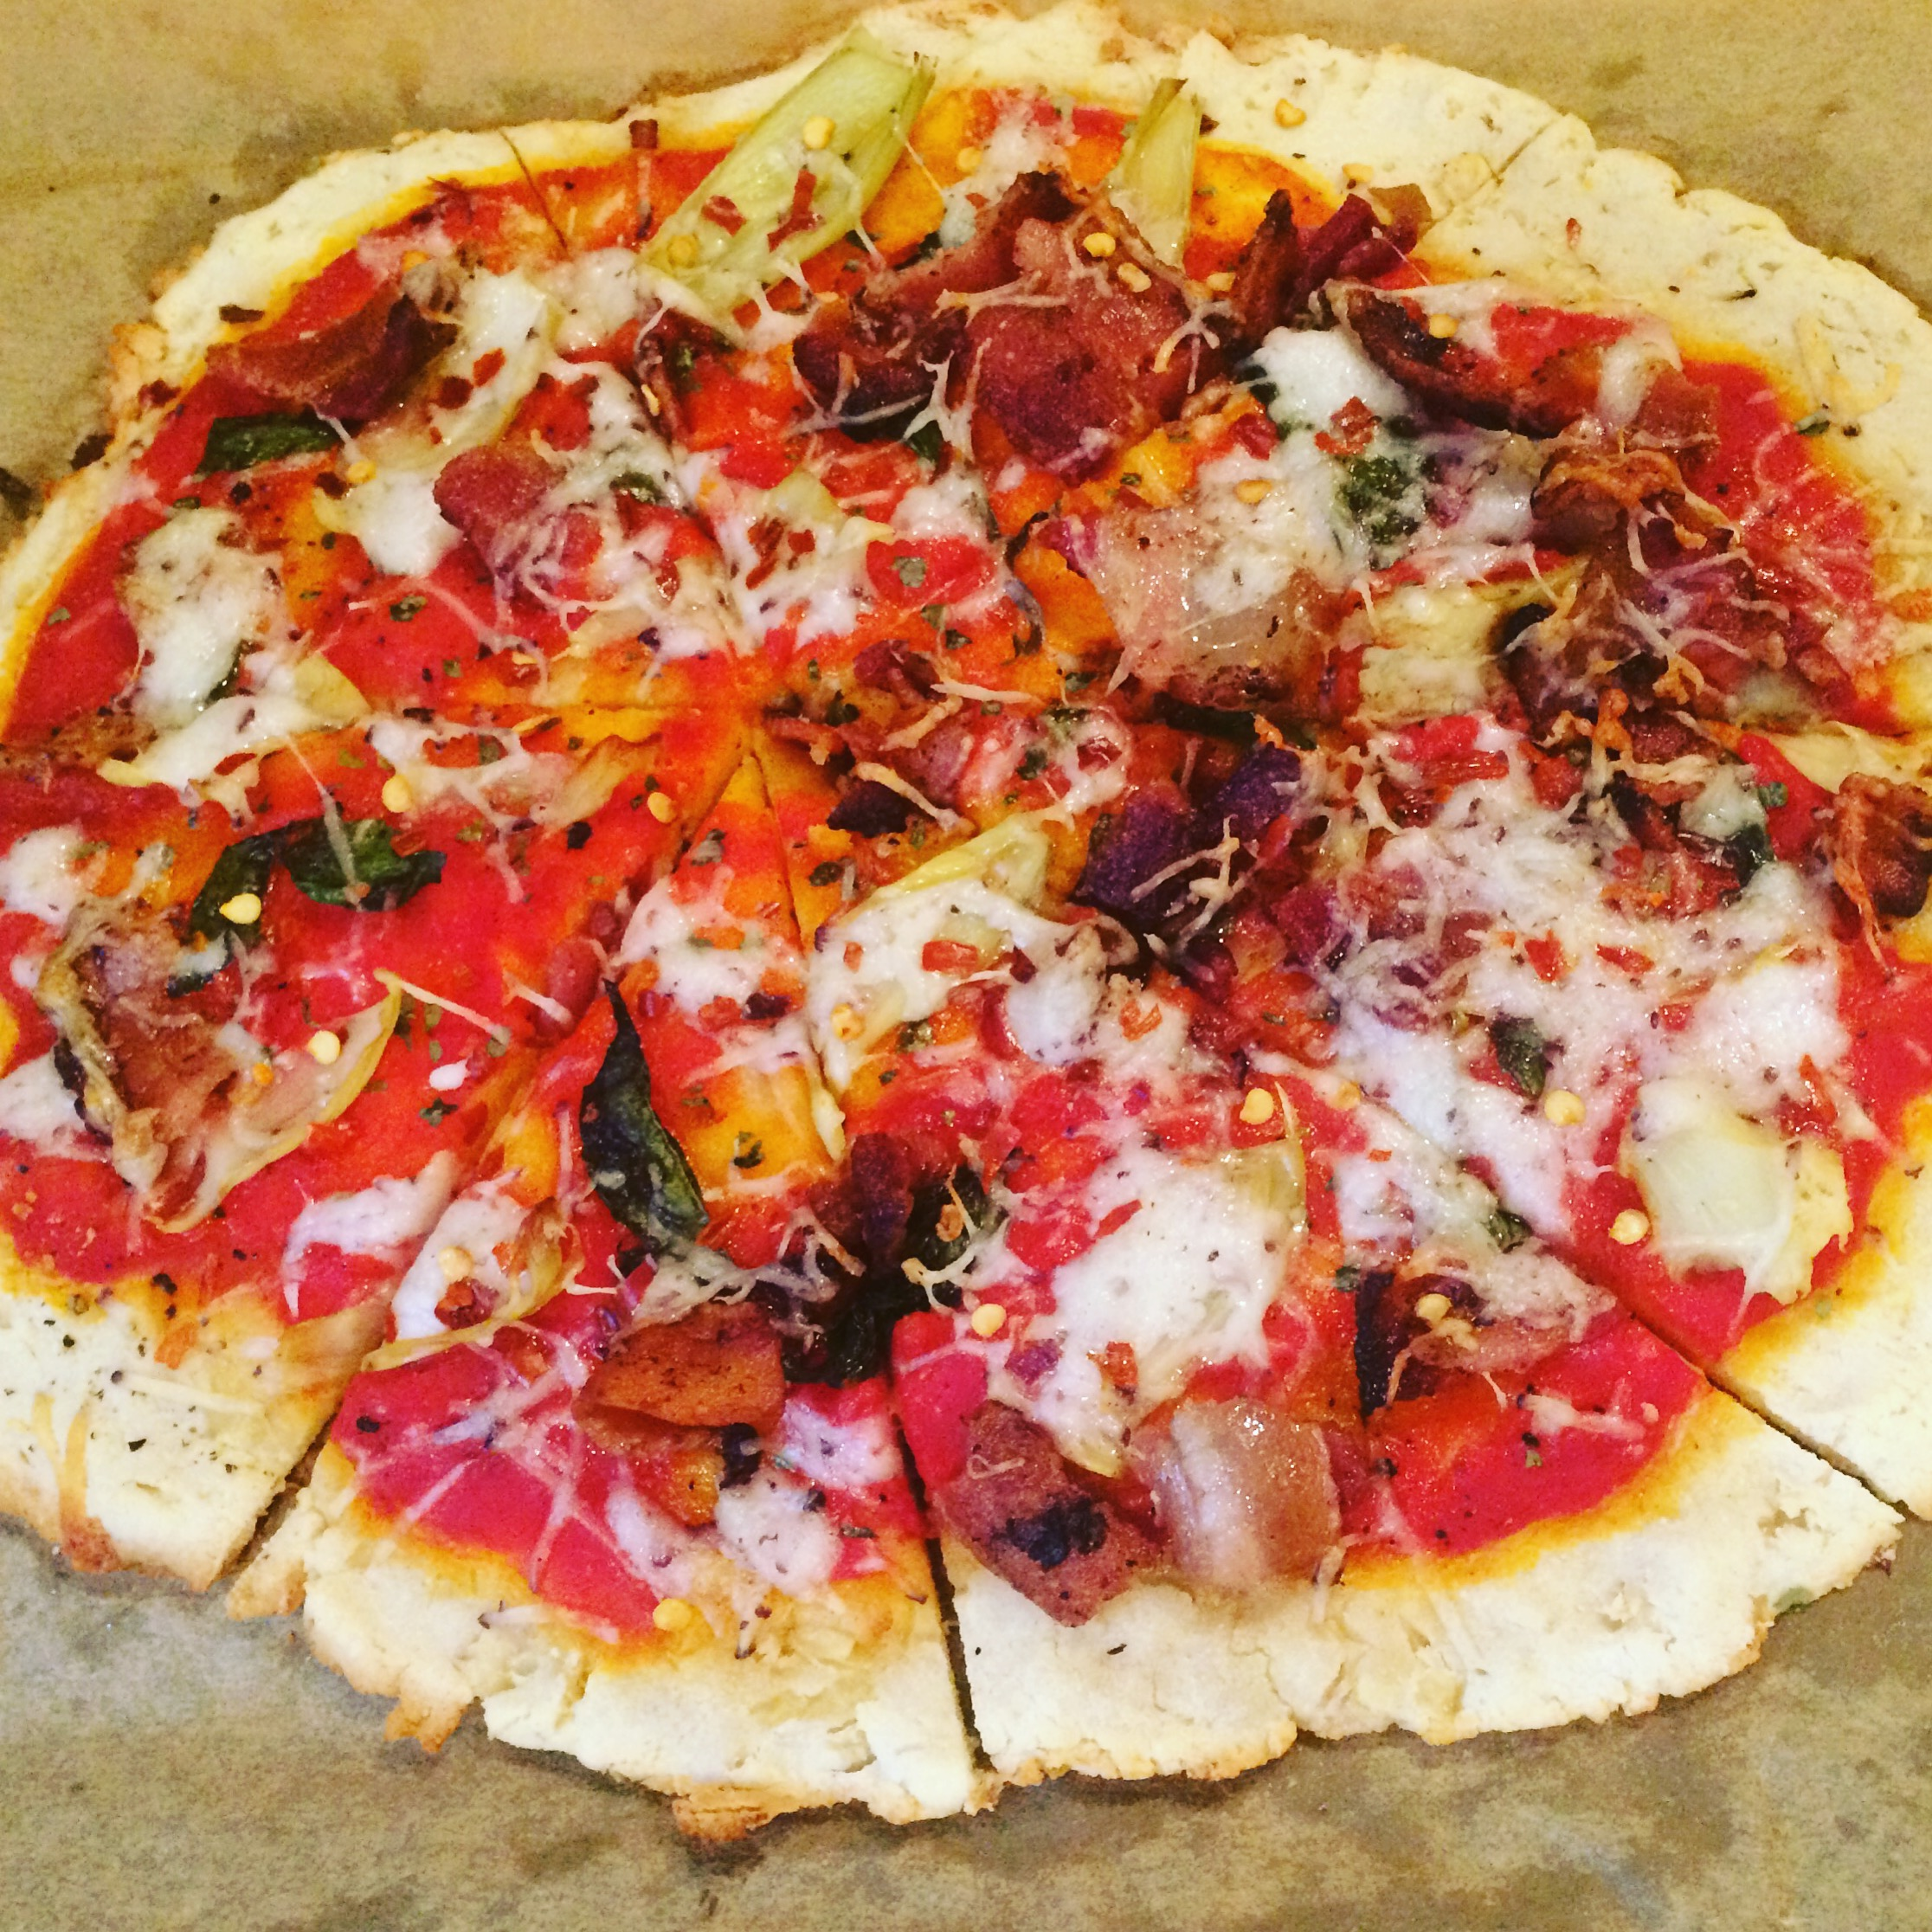 Pizza with toppings on a piece of parchment paper, edges of crust are browned.